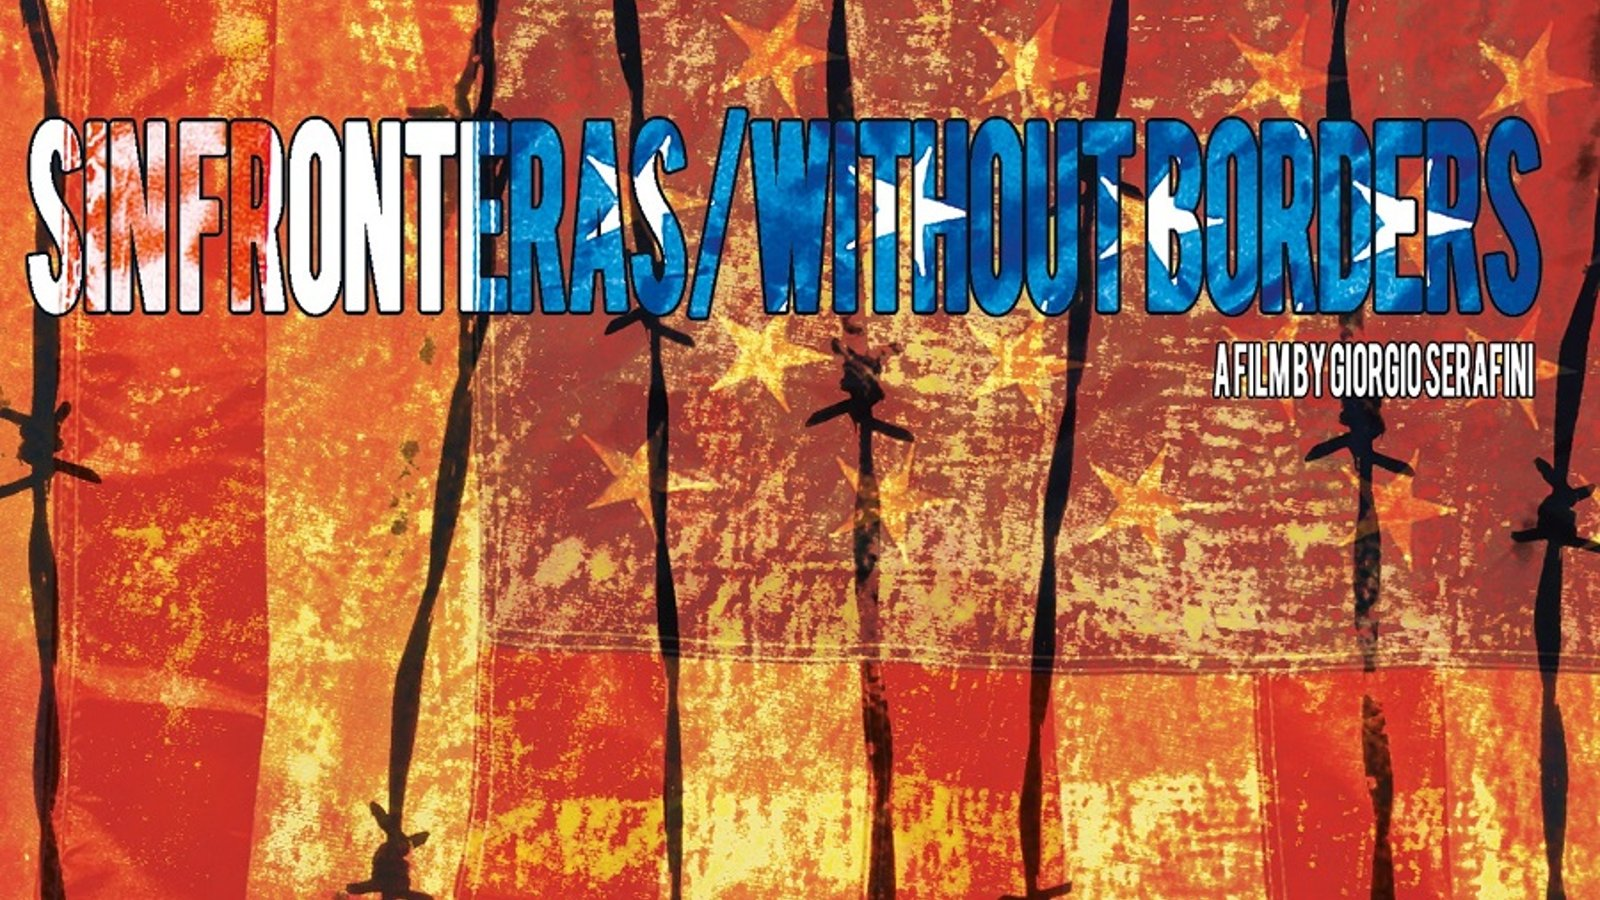 Sin Fronteras (Without Borders)